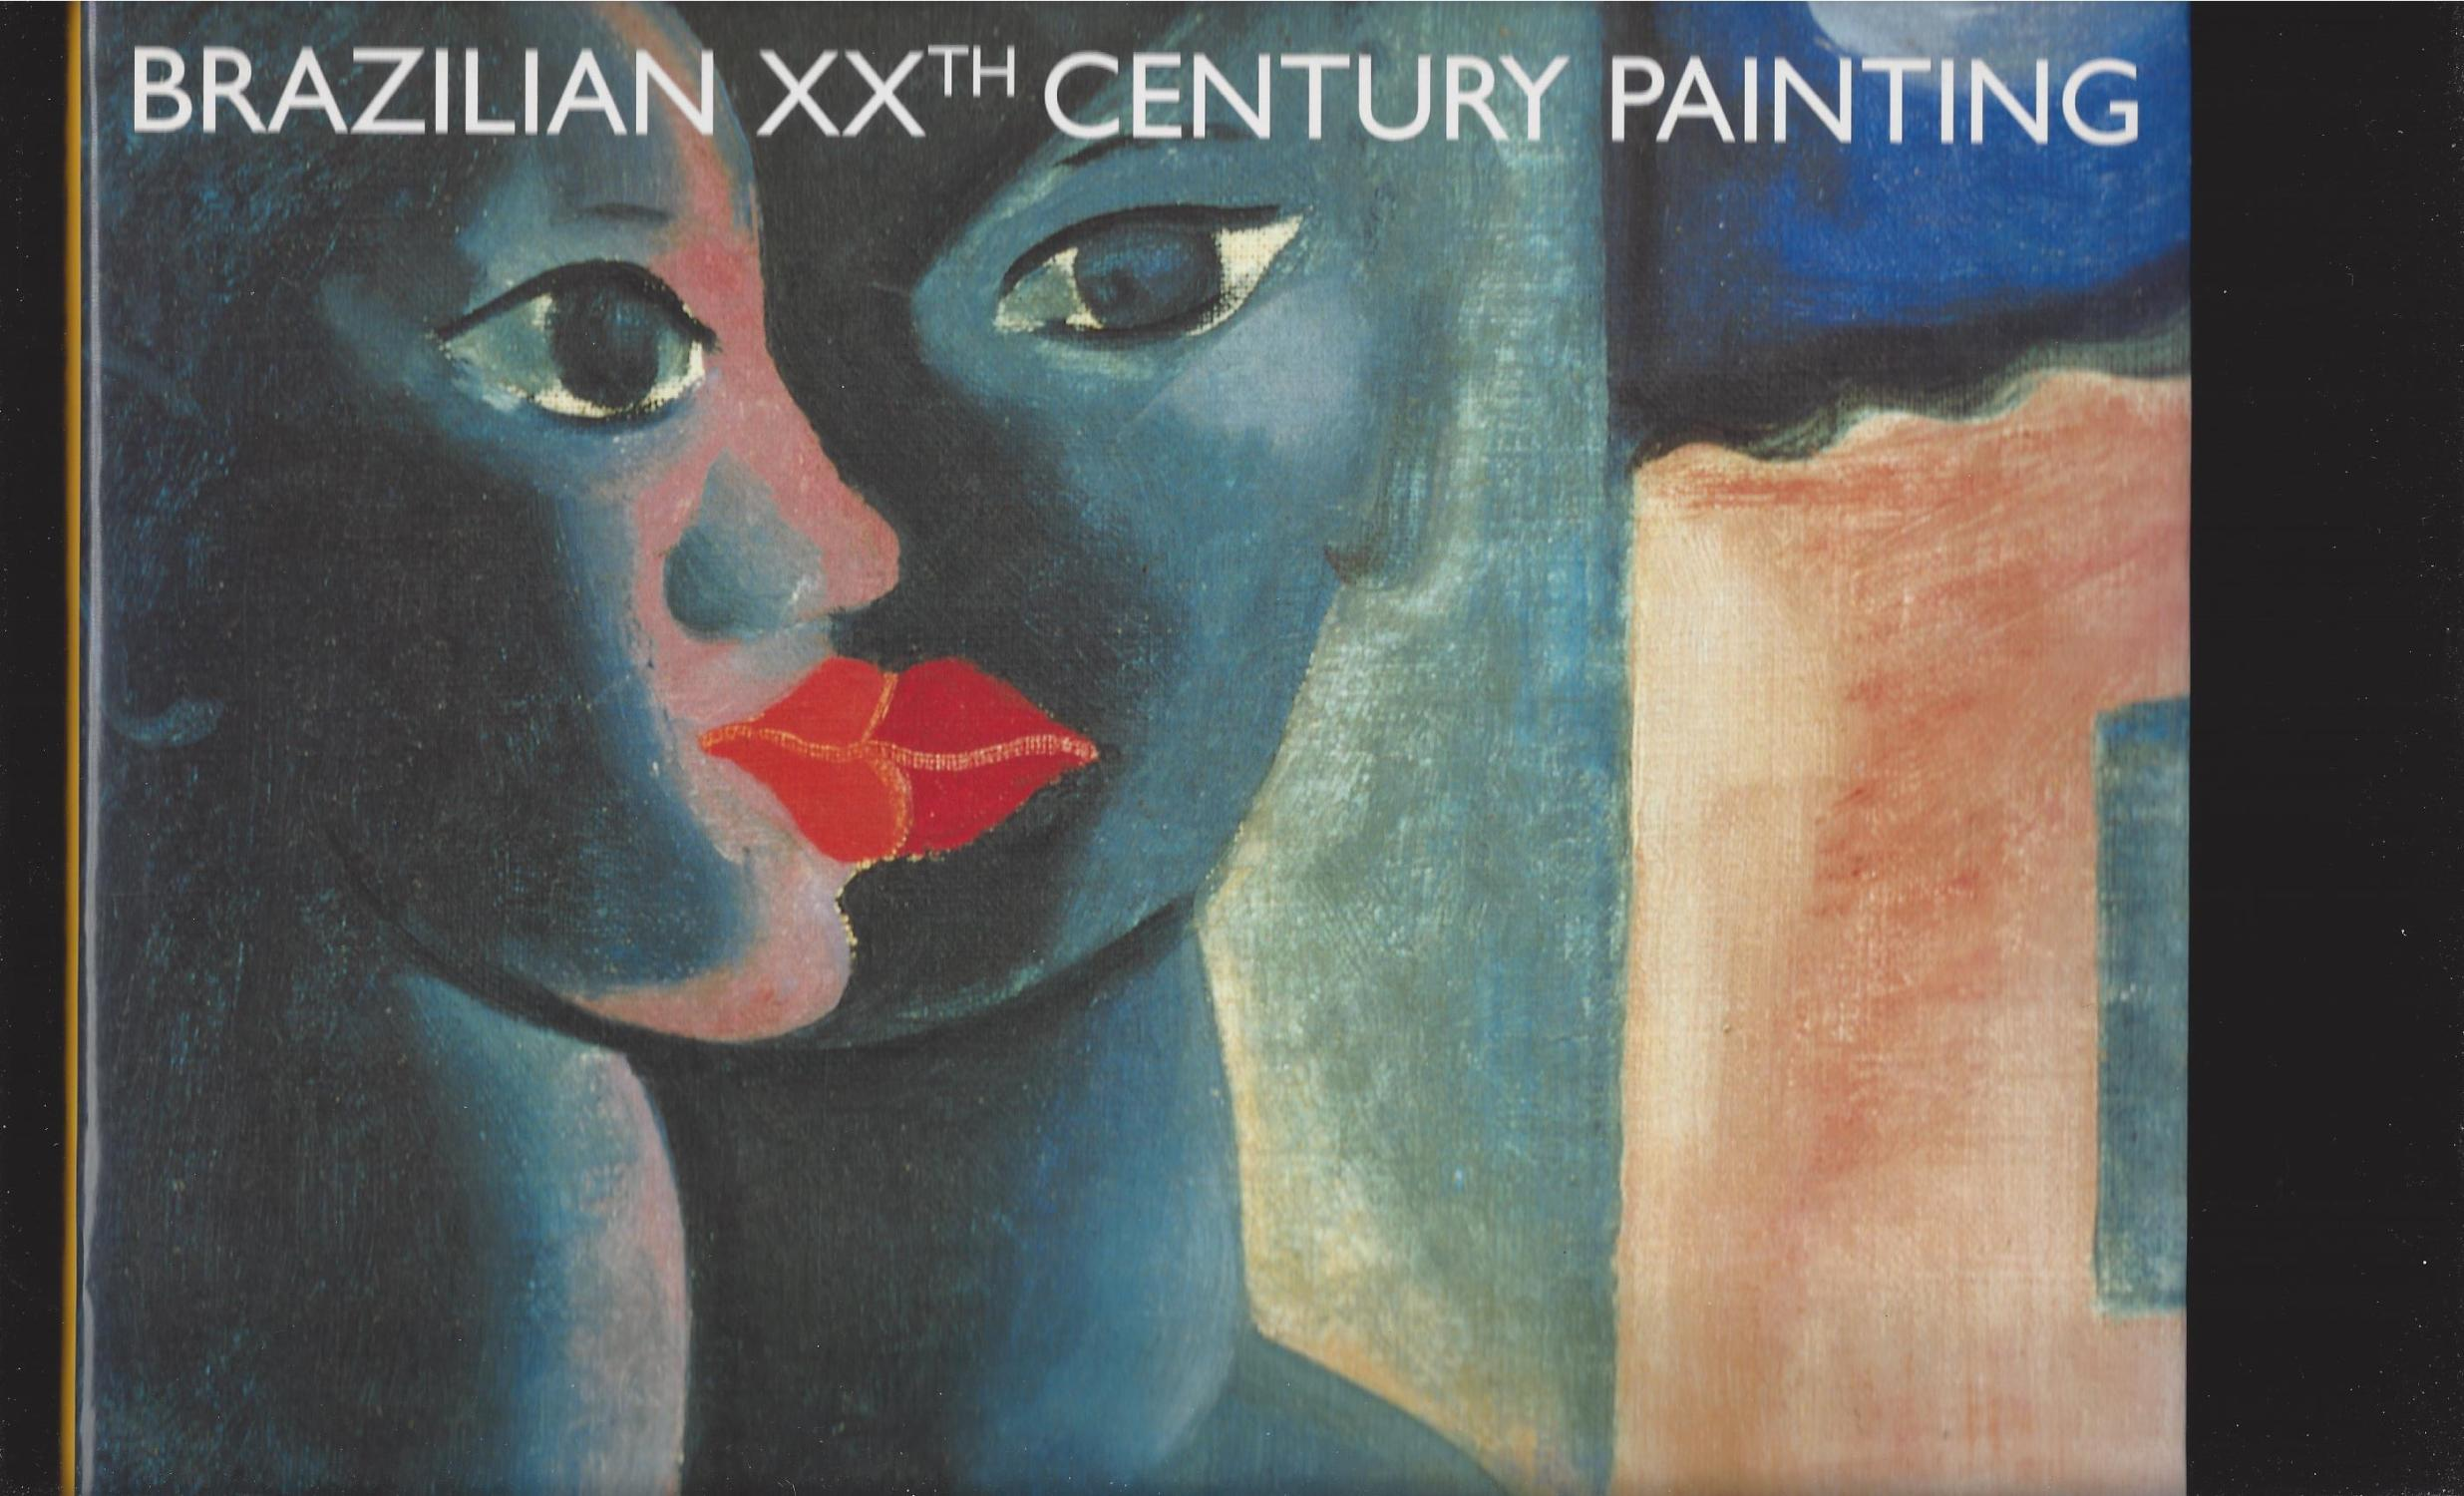 BRAZILIAN XXTH CENTURY PAINTINGS. SIGNIFICANT TRENDS